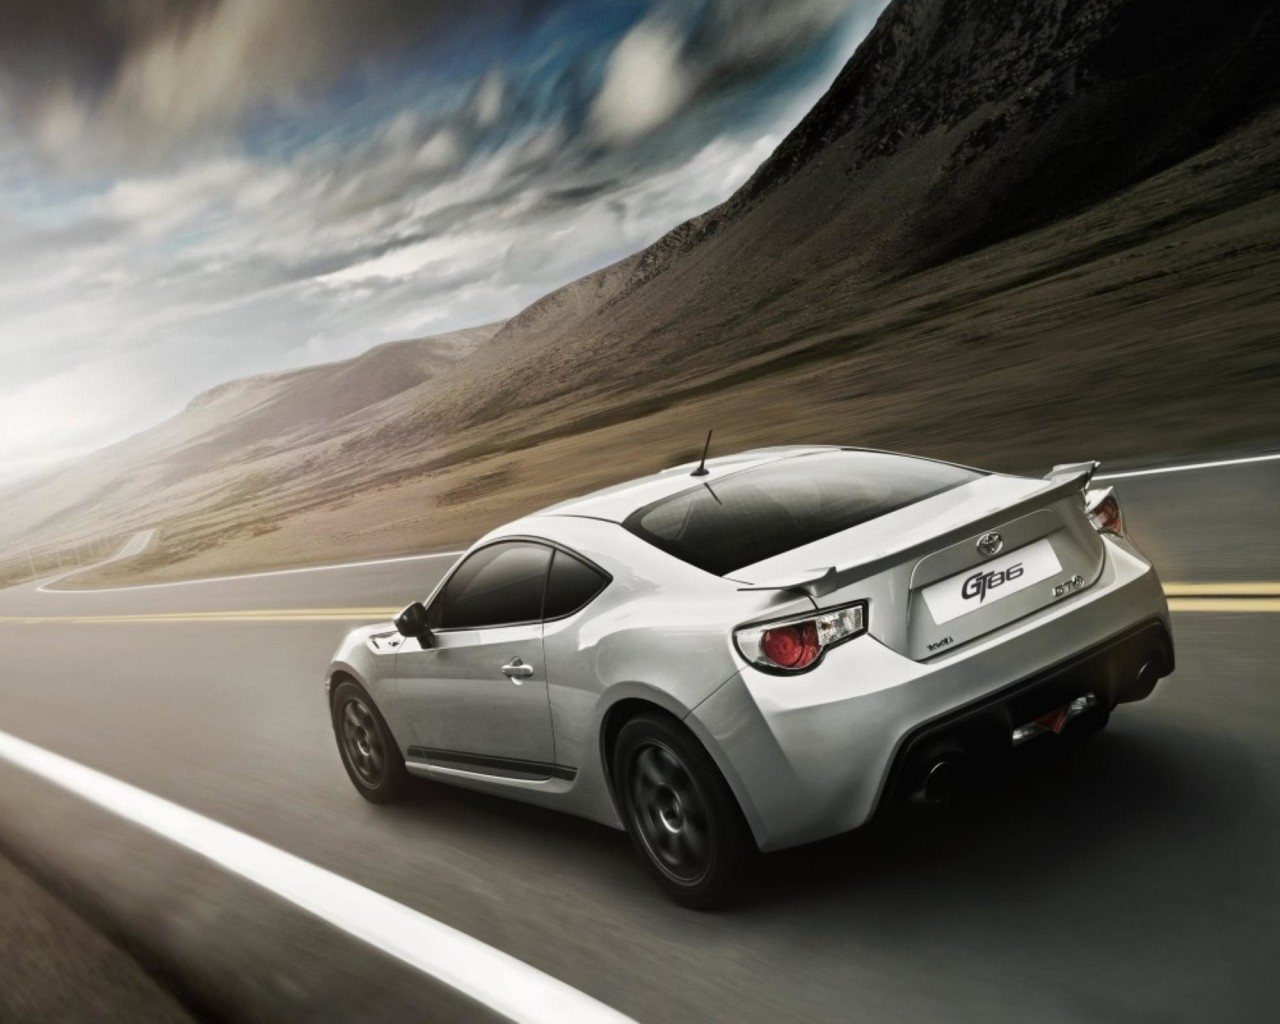 Toyota GT86 HD Wallpaper HD Wallpapers 1280x1024